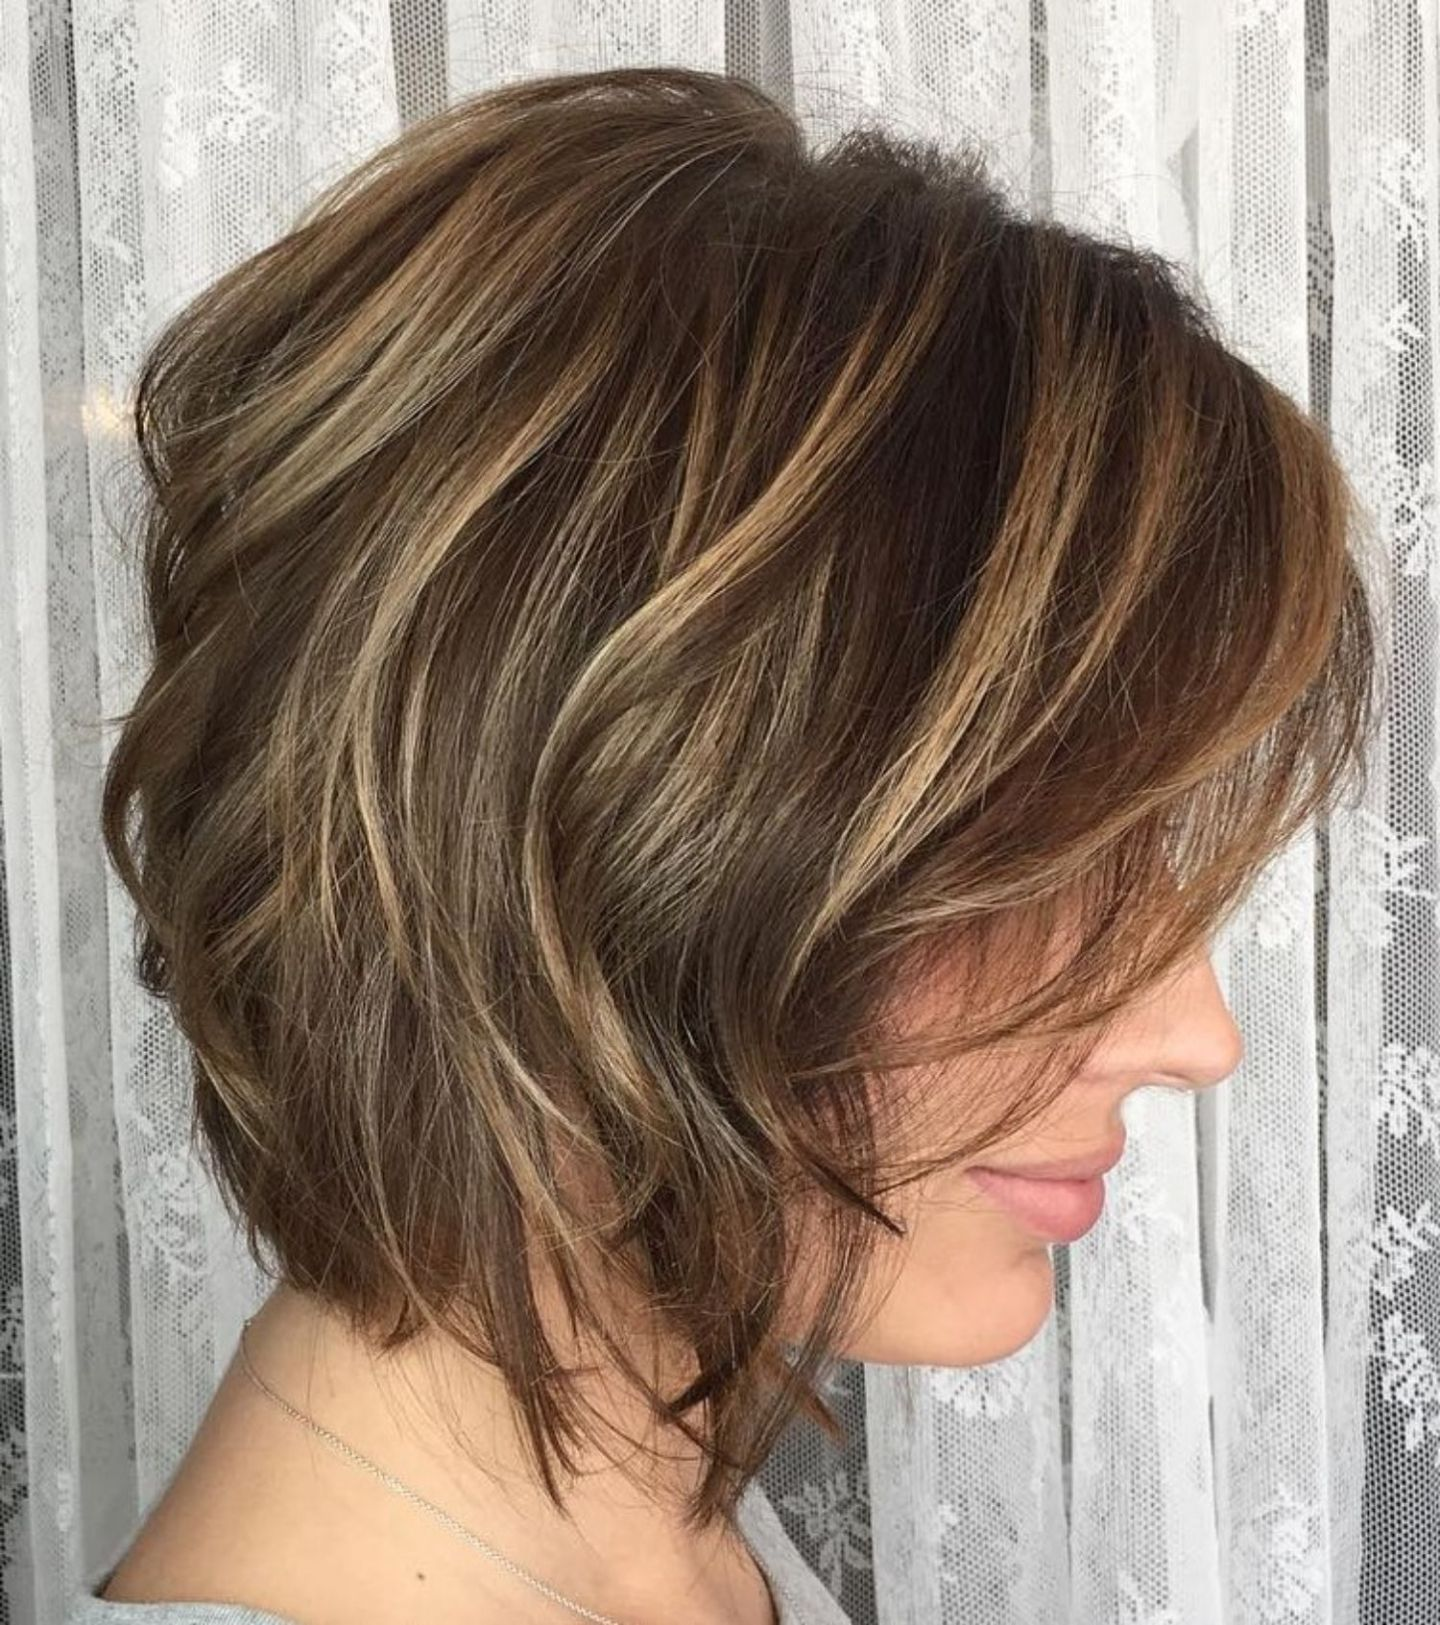 60 Best Short Bob Haircuts And Hairstyles For Women Short Bob Hairstyles Short Bob Haircuts Bob Hairstyles